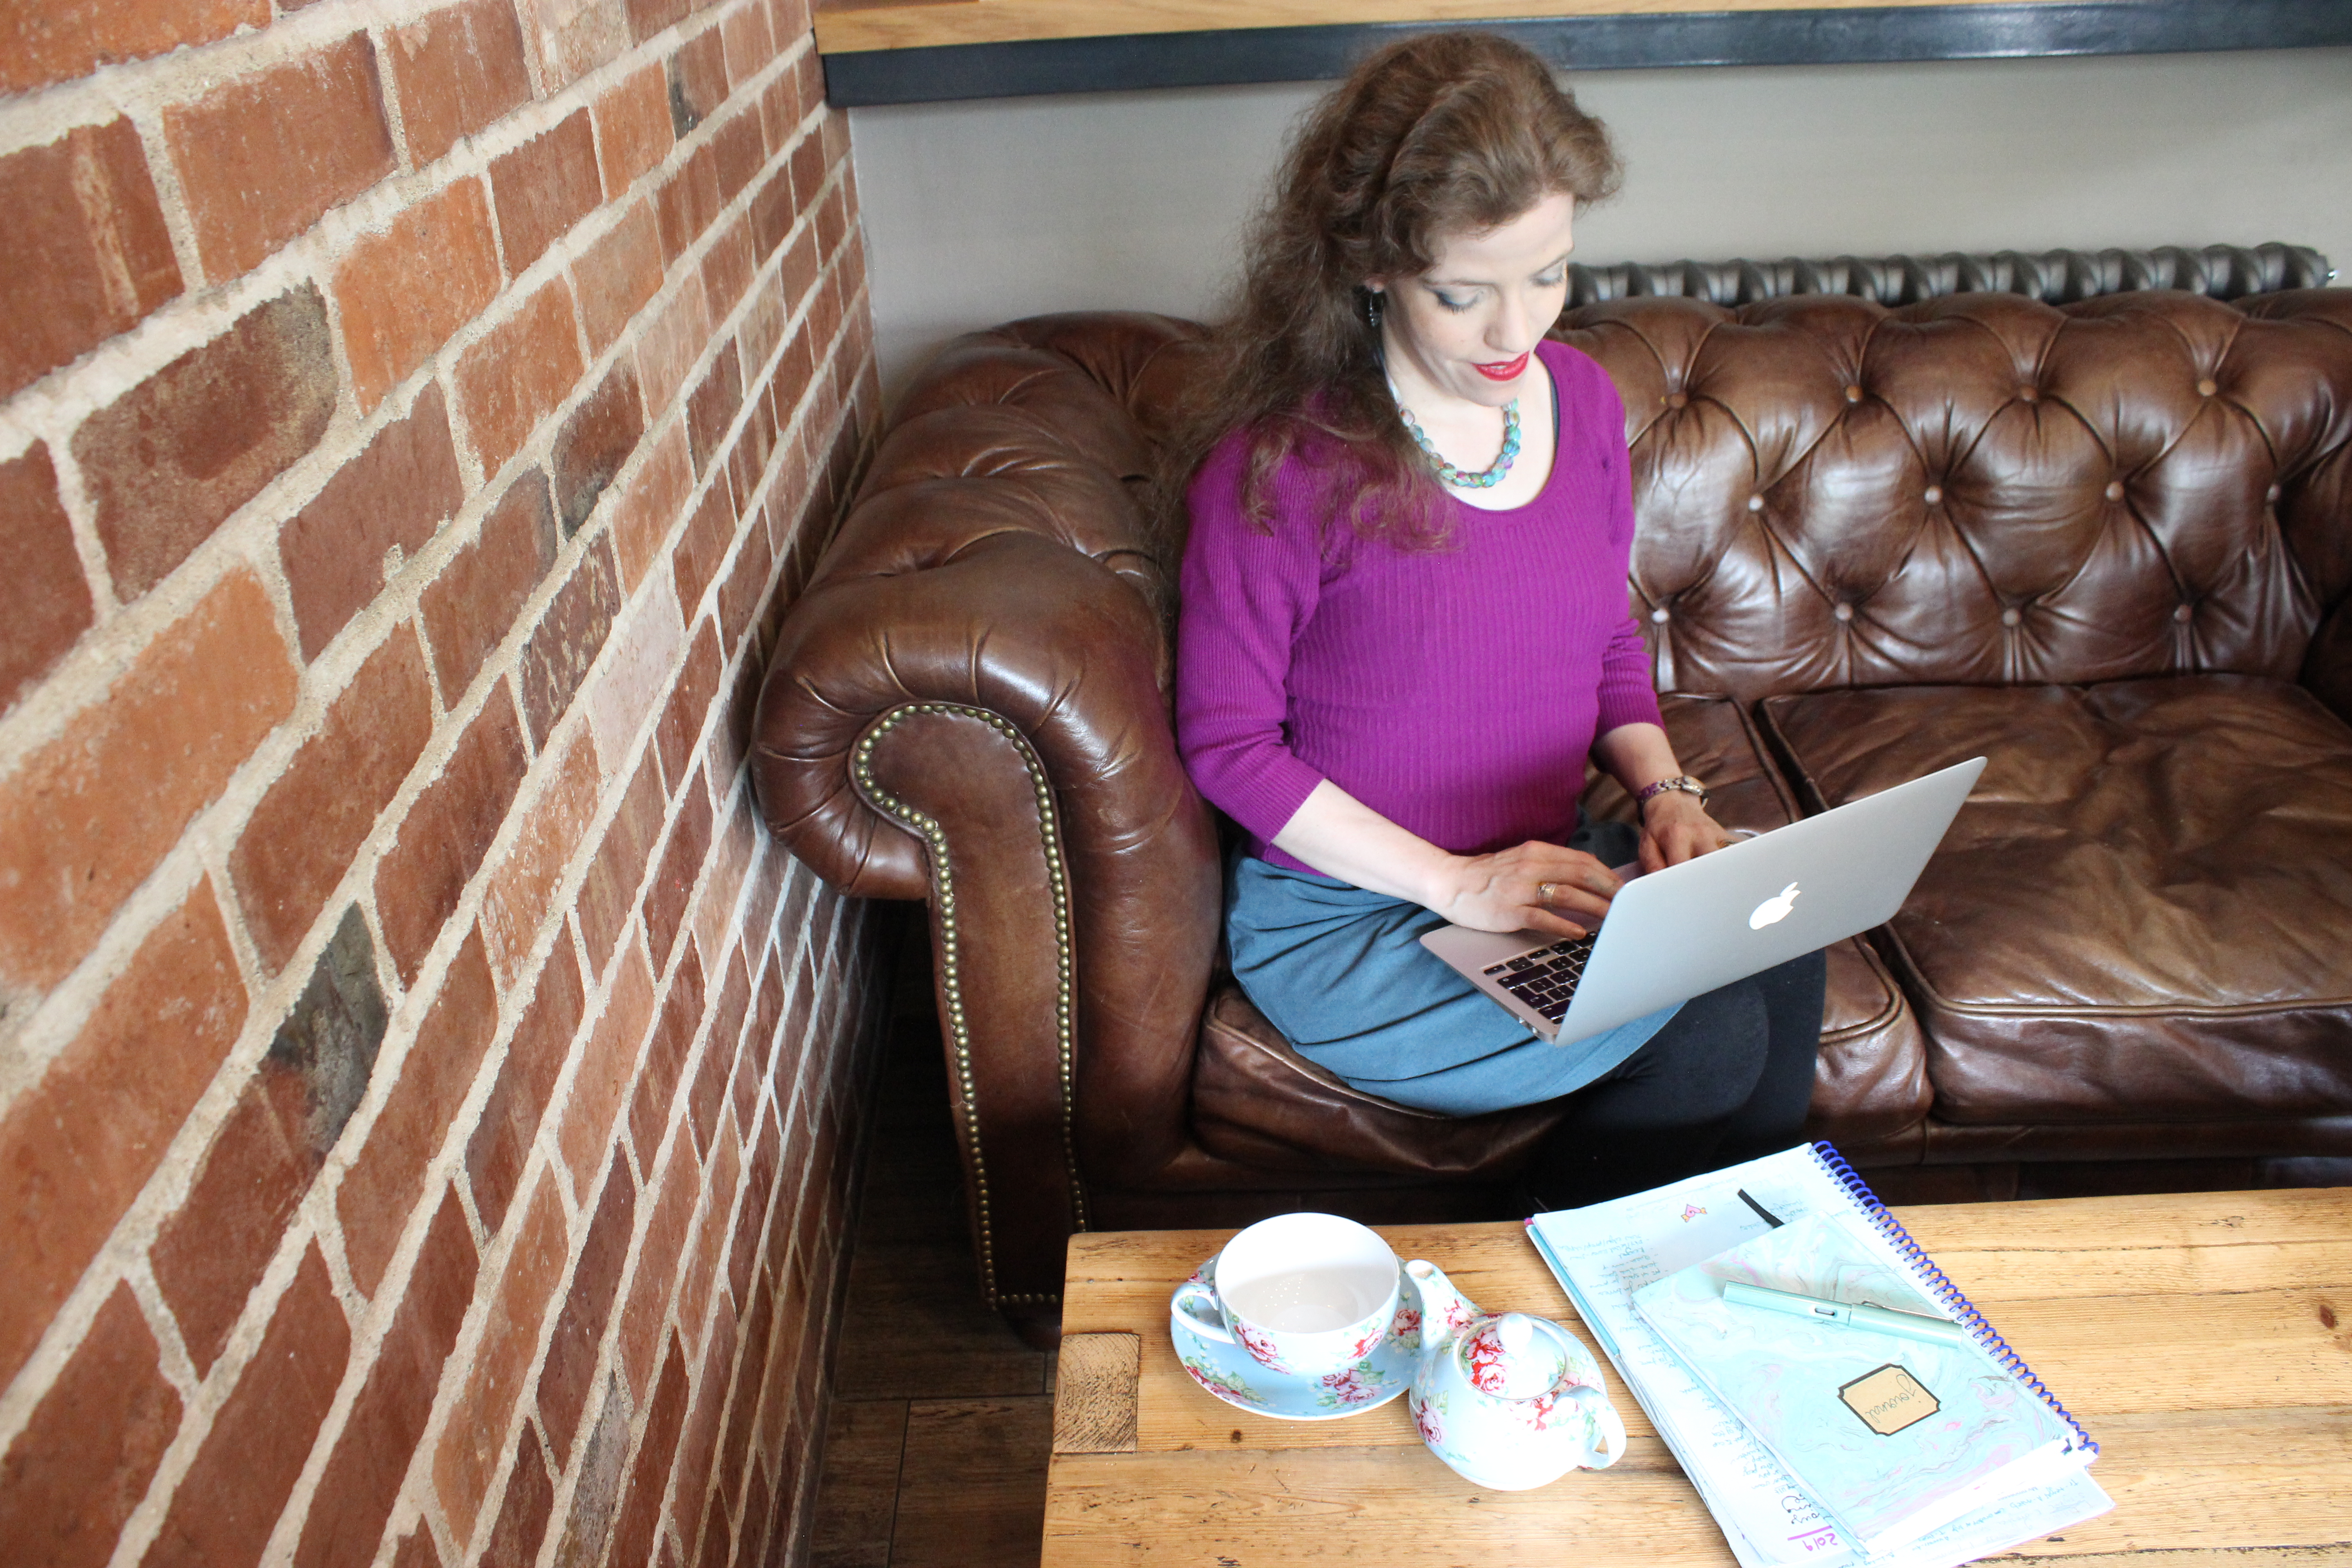 Grace sitting in a cafe, on a soft, typing on a macbook laptop